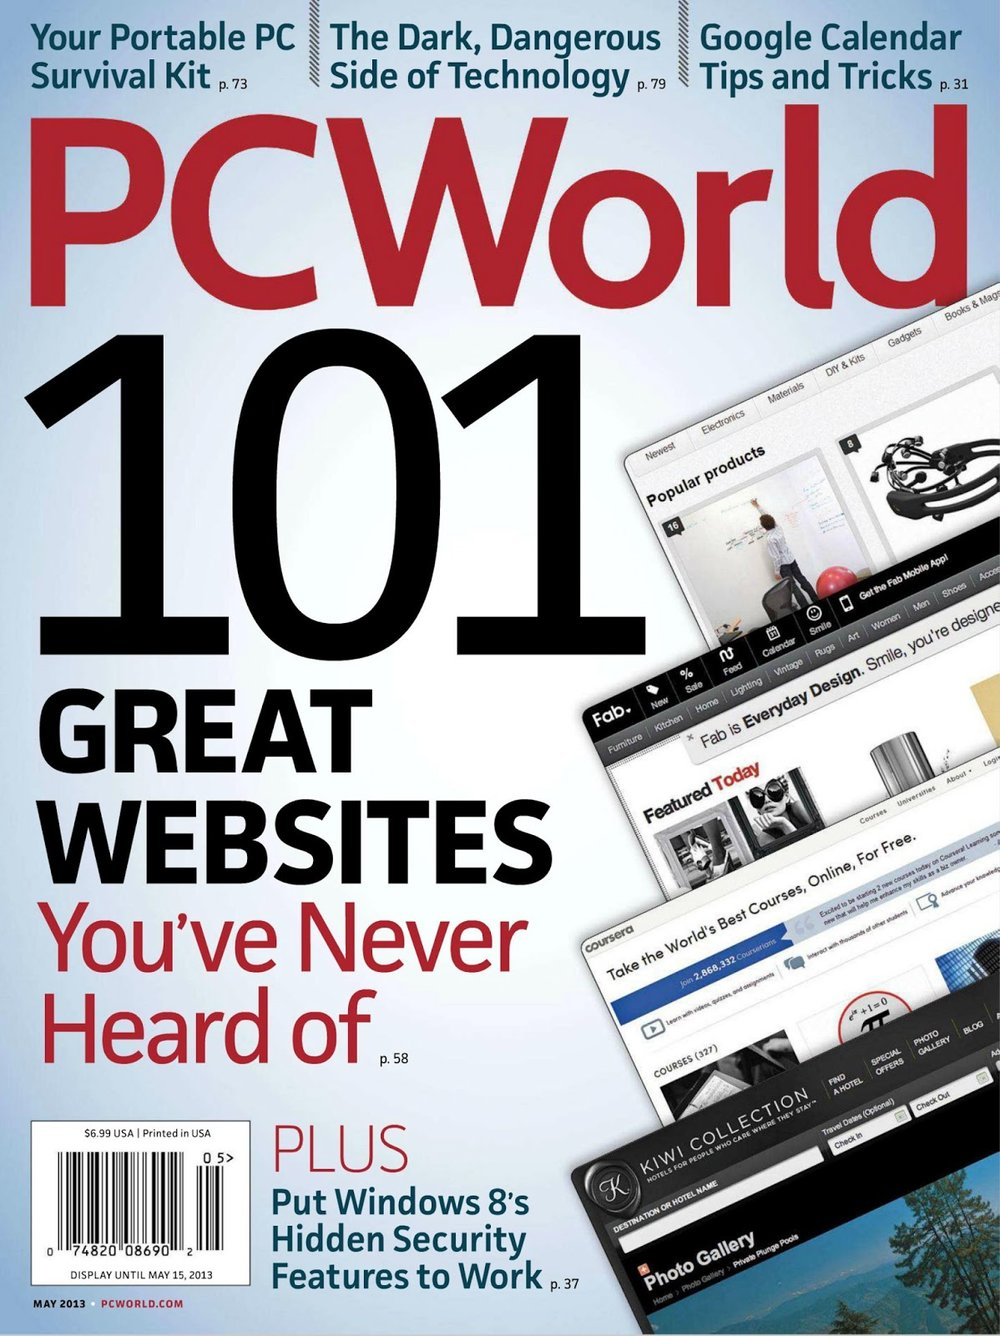 PCWorld - PCWorld is a global computer magazine (now website) focused on lab-tested hardware and software reviews. Prior to its print shutdown in 2013, PCWorld had a total circulation of 355,000, making it the largest computing magazine in the world. I've been a writer and contributing editor to PCWorld for eight years.Scroll down for a selection of clips, or click here to see all of my work for PCWorld.